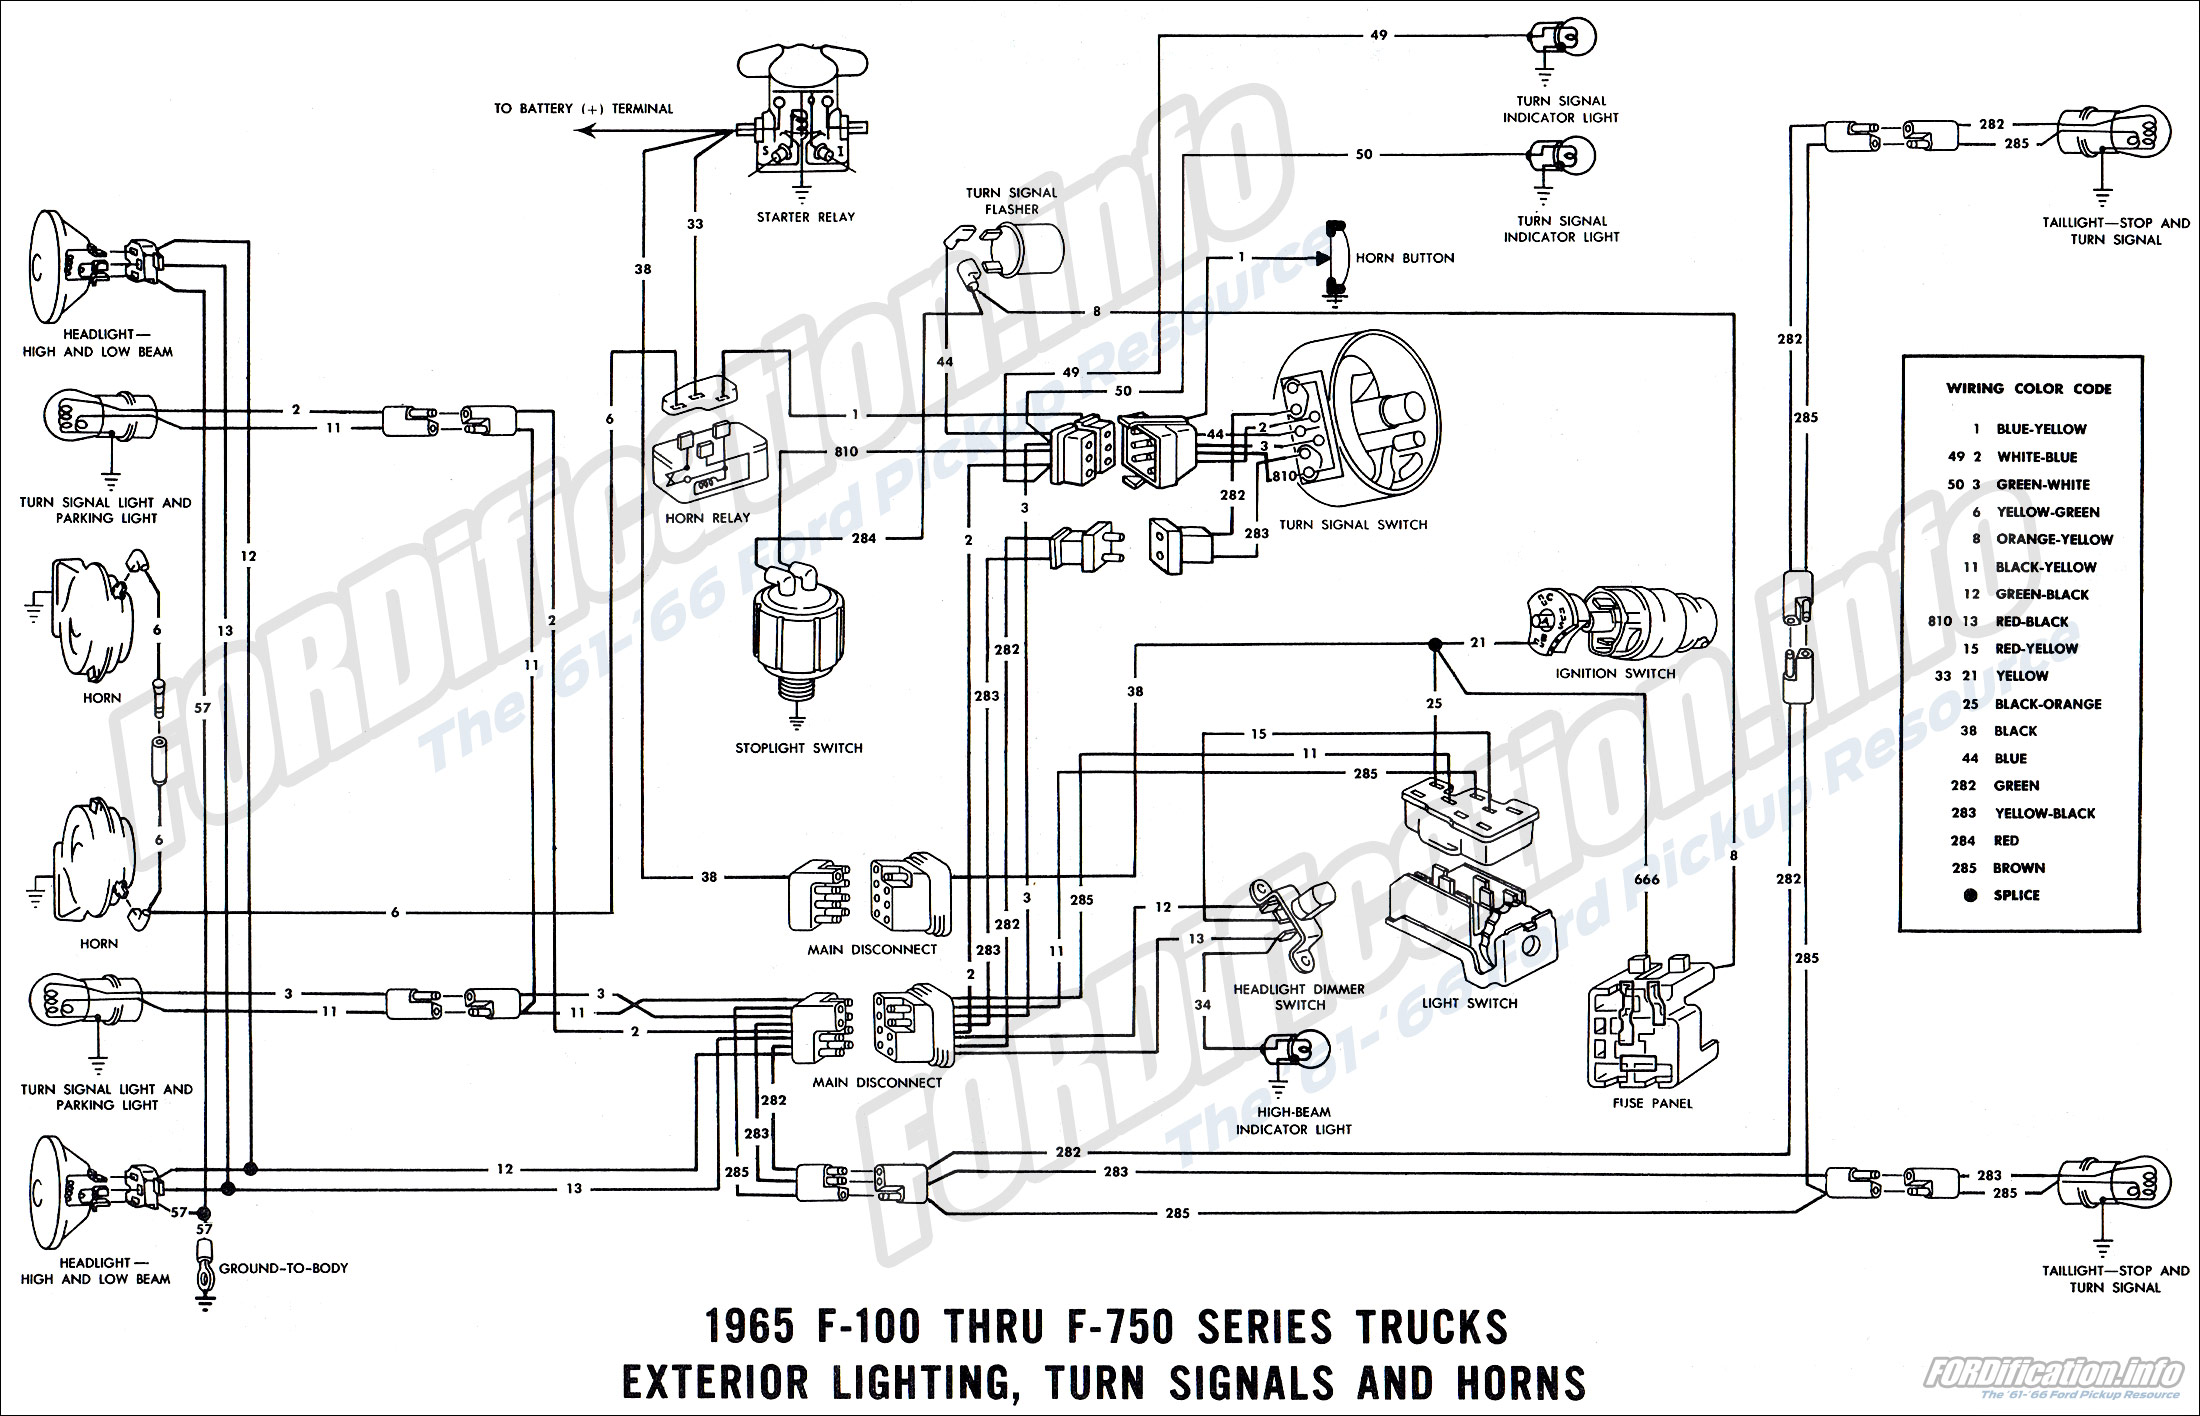 Ford Pickup Wiring Diagrams - Wiring Diagram Show on 1948 cadillac wiring diagram, 1936 ford brakes, auto light switch wiring diagram, 1927 buick wiring diagram, 6 volt generator wiring diagram, 1942 chevy wiring diagram, 1955 buick wiring diagram, 1960 chevy wiring diagram, 1936 ford distributor, 1931 buick wiring diagram, 1939 chevy wiring diagram, 1936 ford continental kit, 1937 cord wiring diagram, 1949 cadillac wiring diagram, 1938 chevy wiring diagram, 1938 buick wiring diagram, 1948 chevy wiring diagram, 1940 cadillac wiring diagram, 1940 buick wiring diagram, 1950 cadillac wiring diagram,